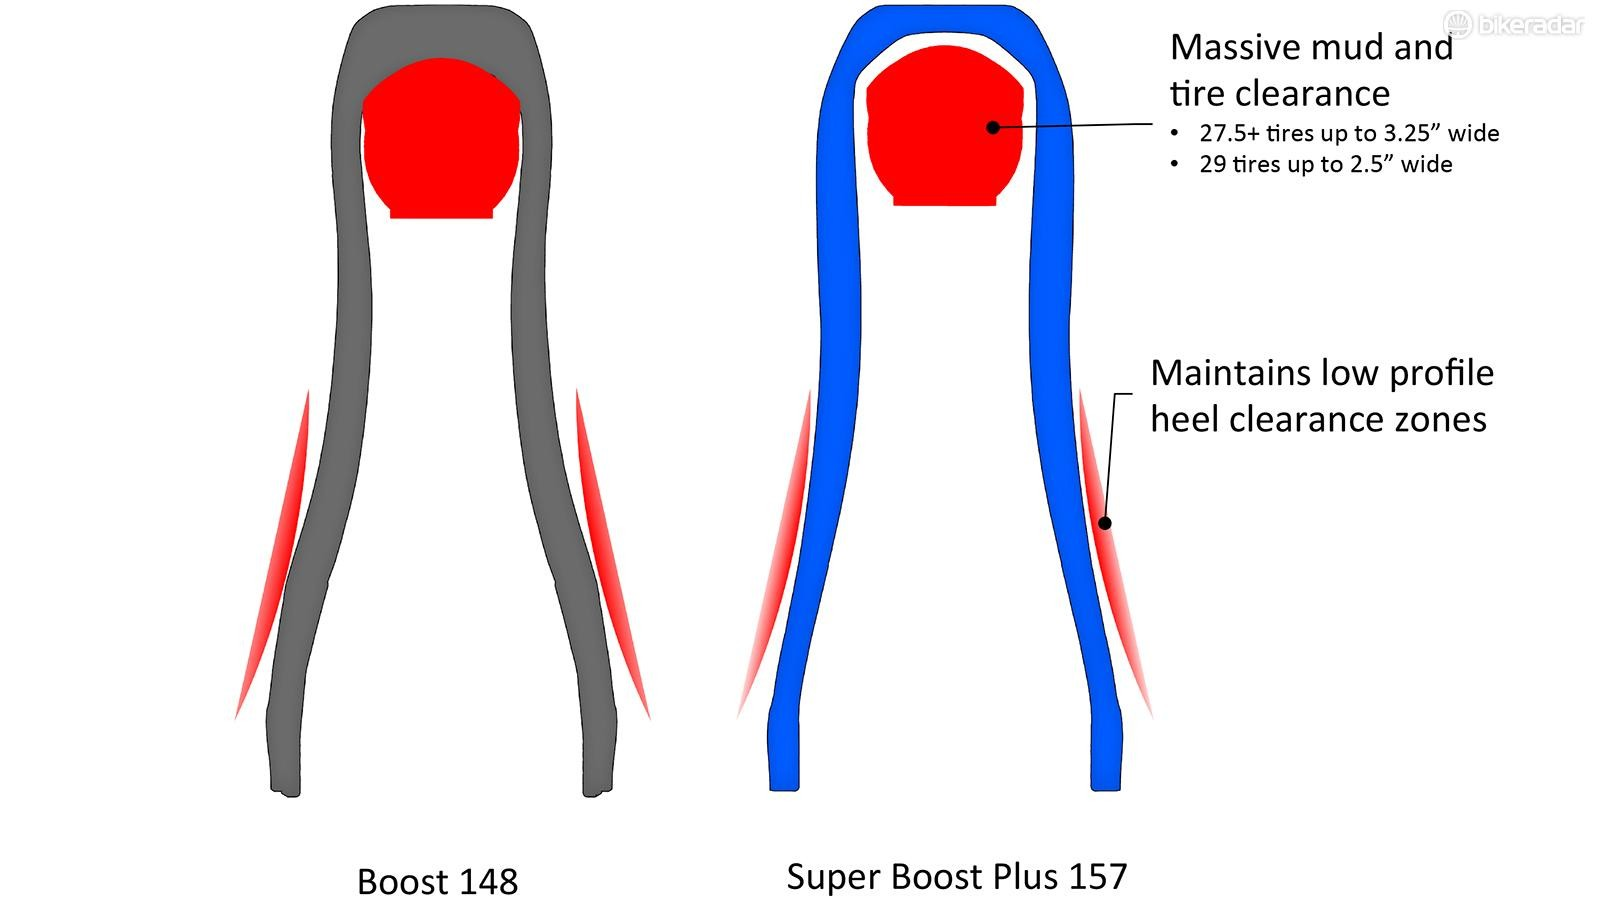 Increased tire and heel clearance are two of the claimed benefits of Super Boost spacing